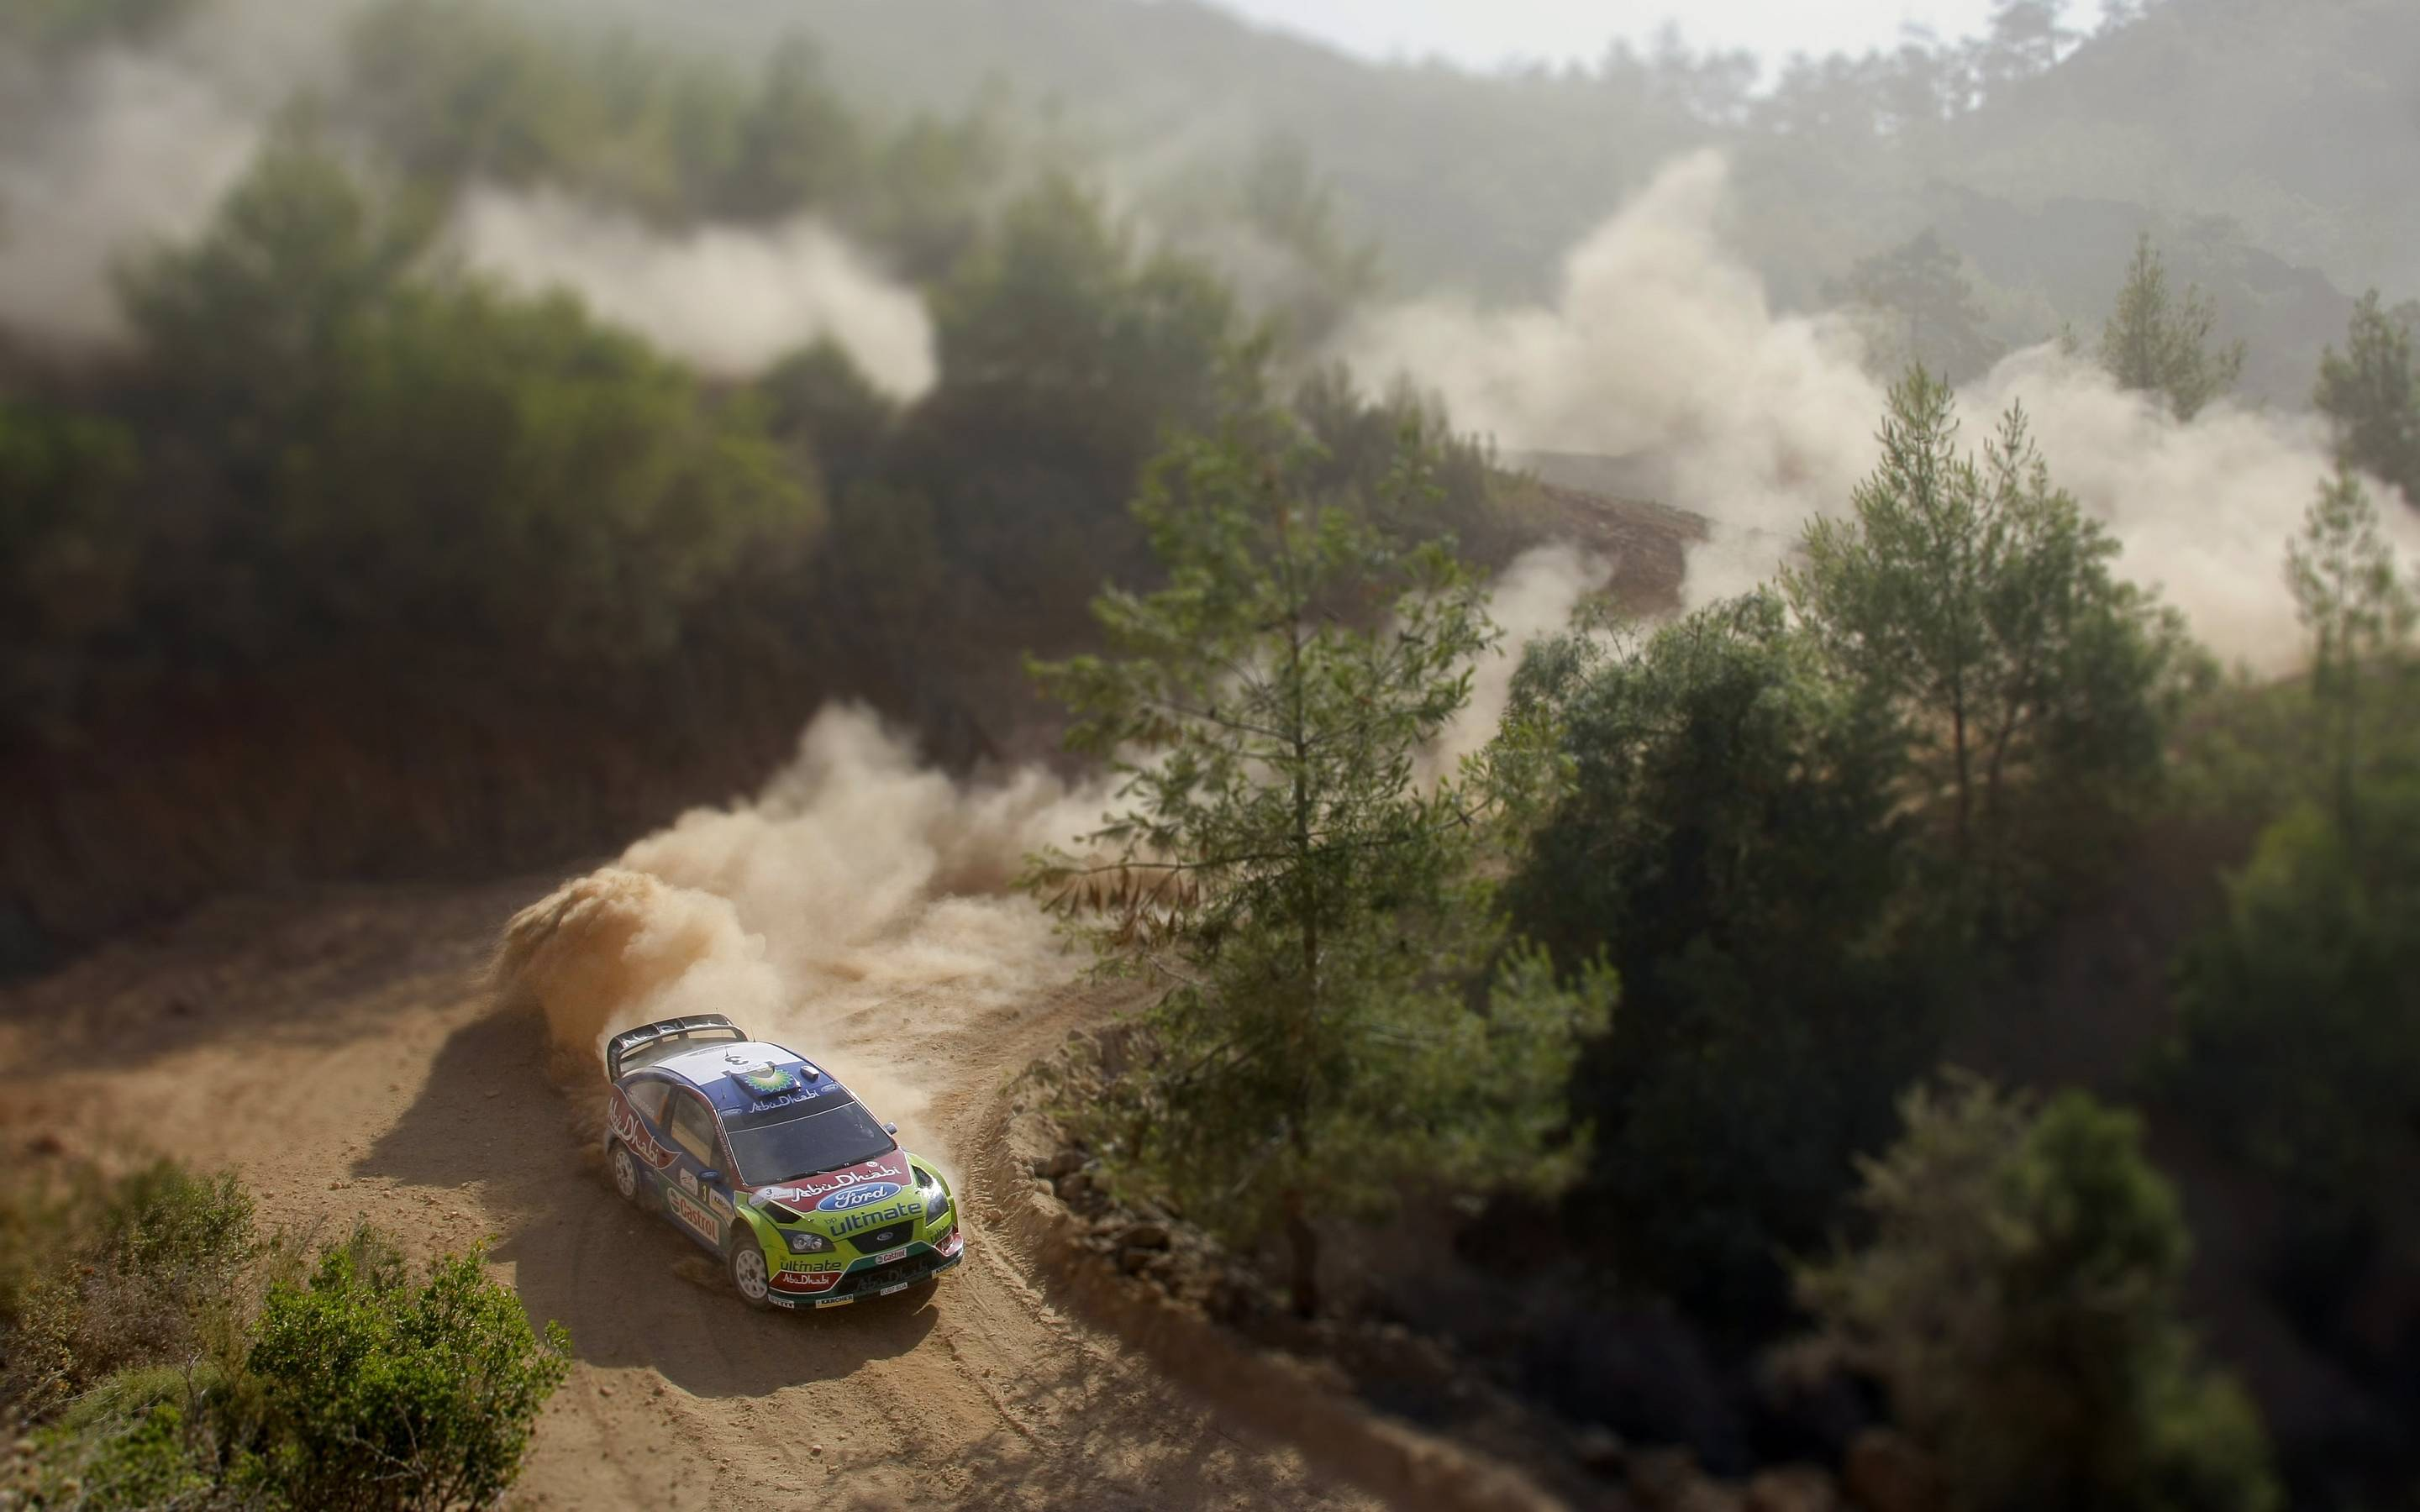 Wrc Wallpapers Wallpaper Cave